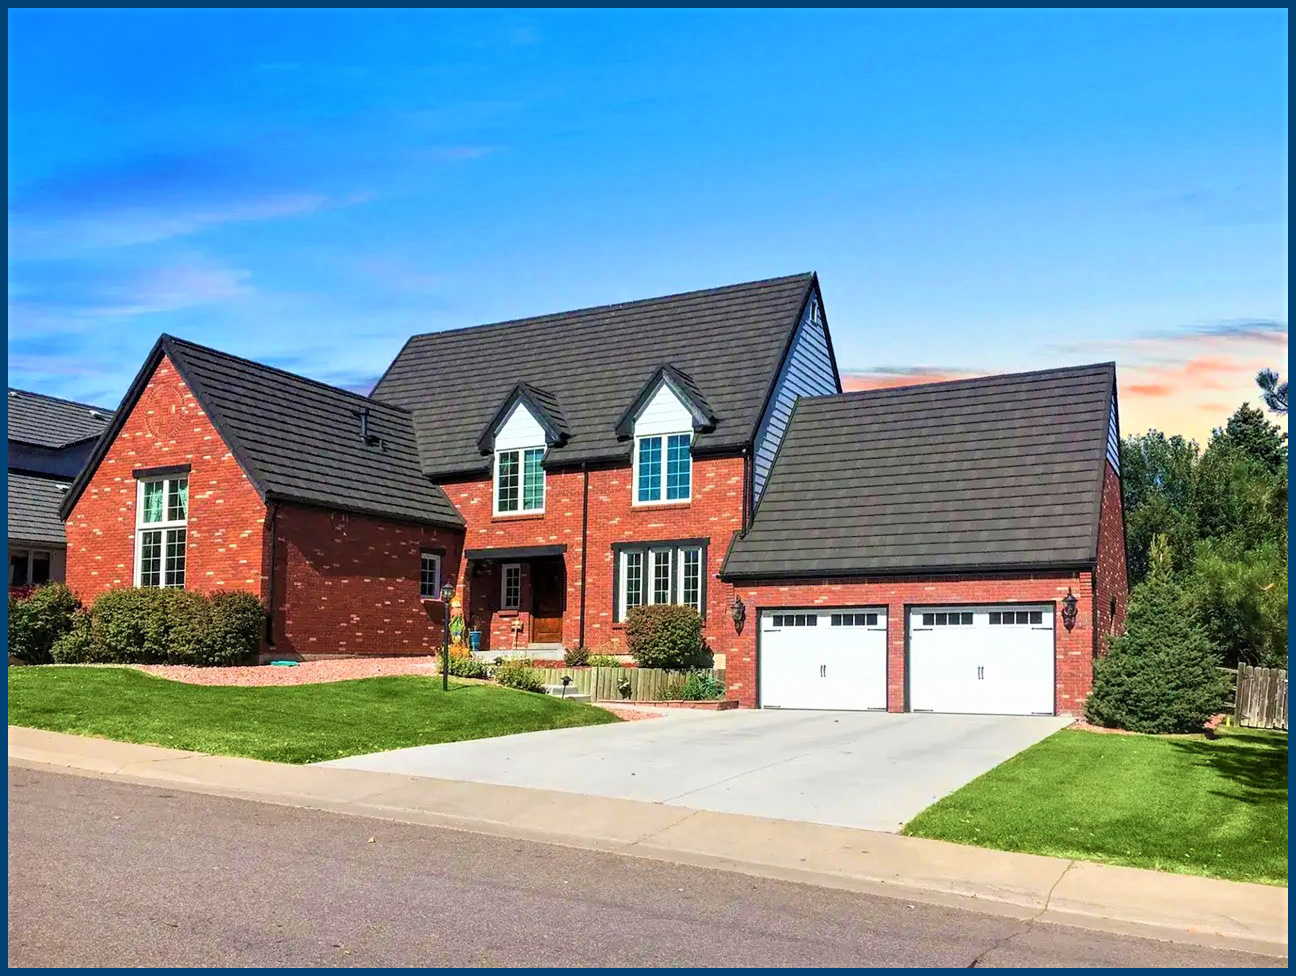 a red brick home sits in a small plot of land with dark, charcoal colored roofing shingles.